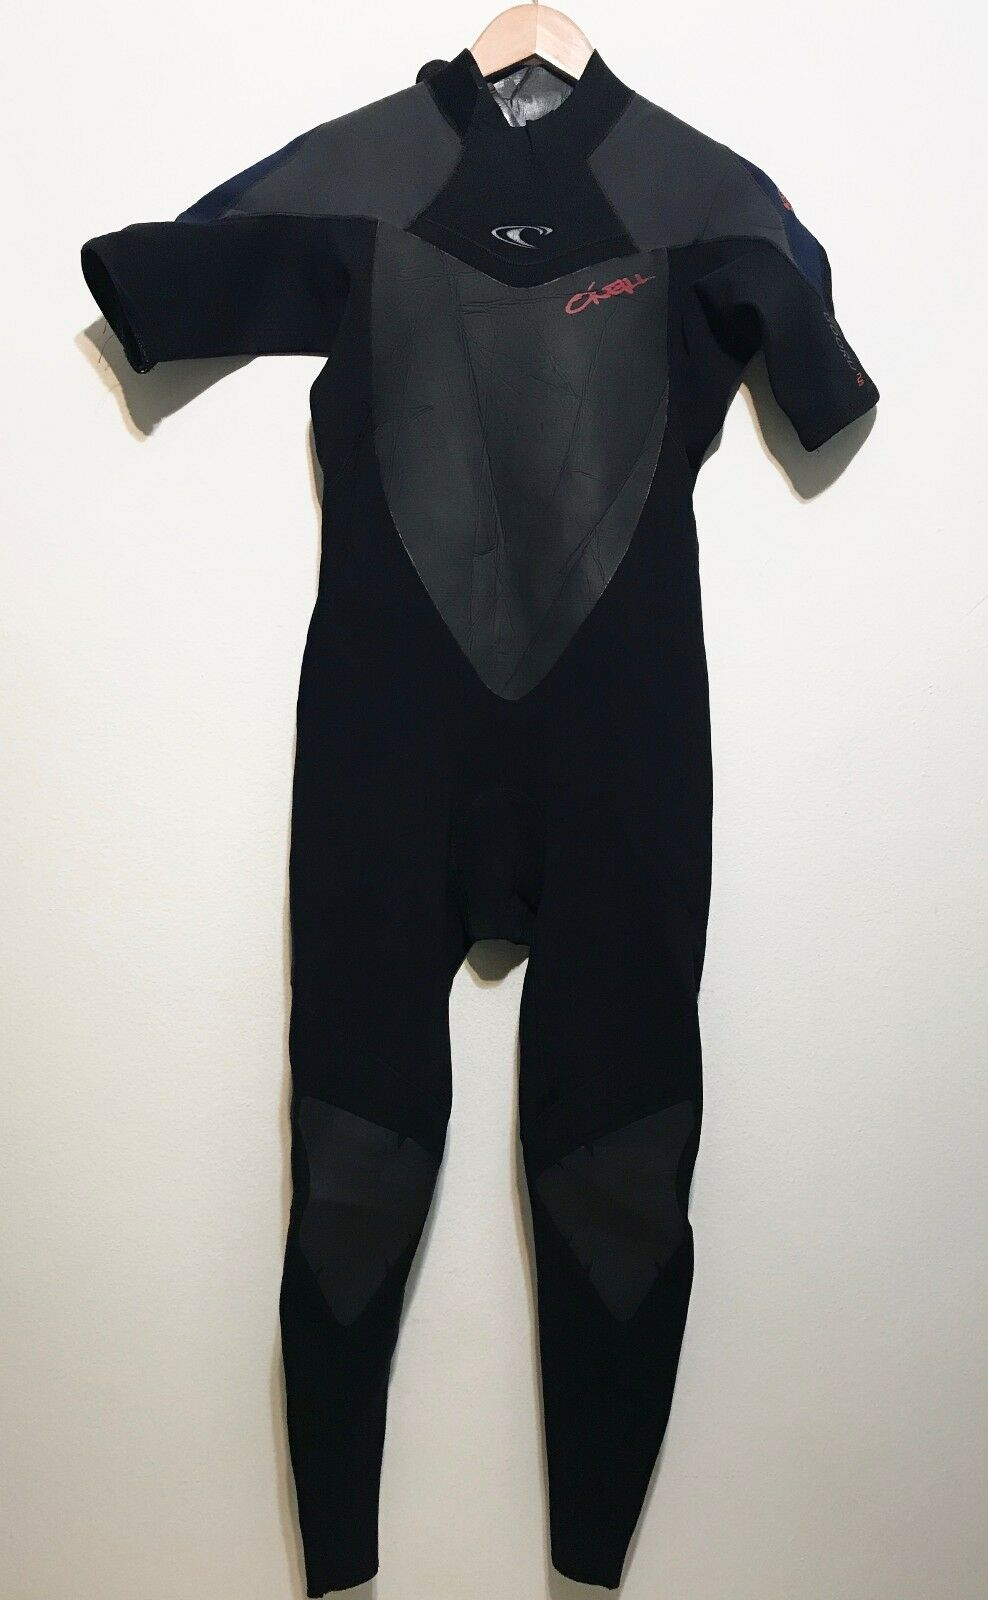 O'Neill Mens Full Wetsuit Size Large L Gooru 2 2 Short Sleeve